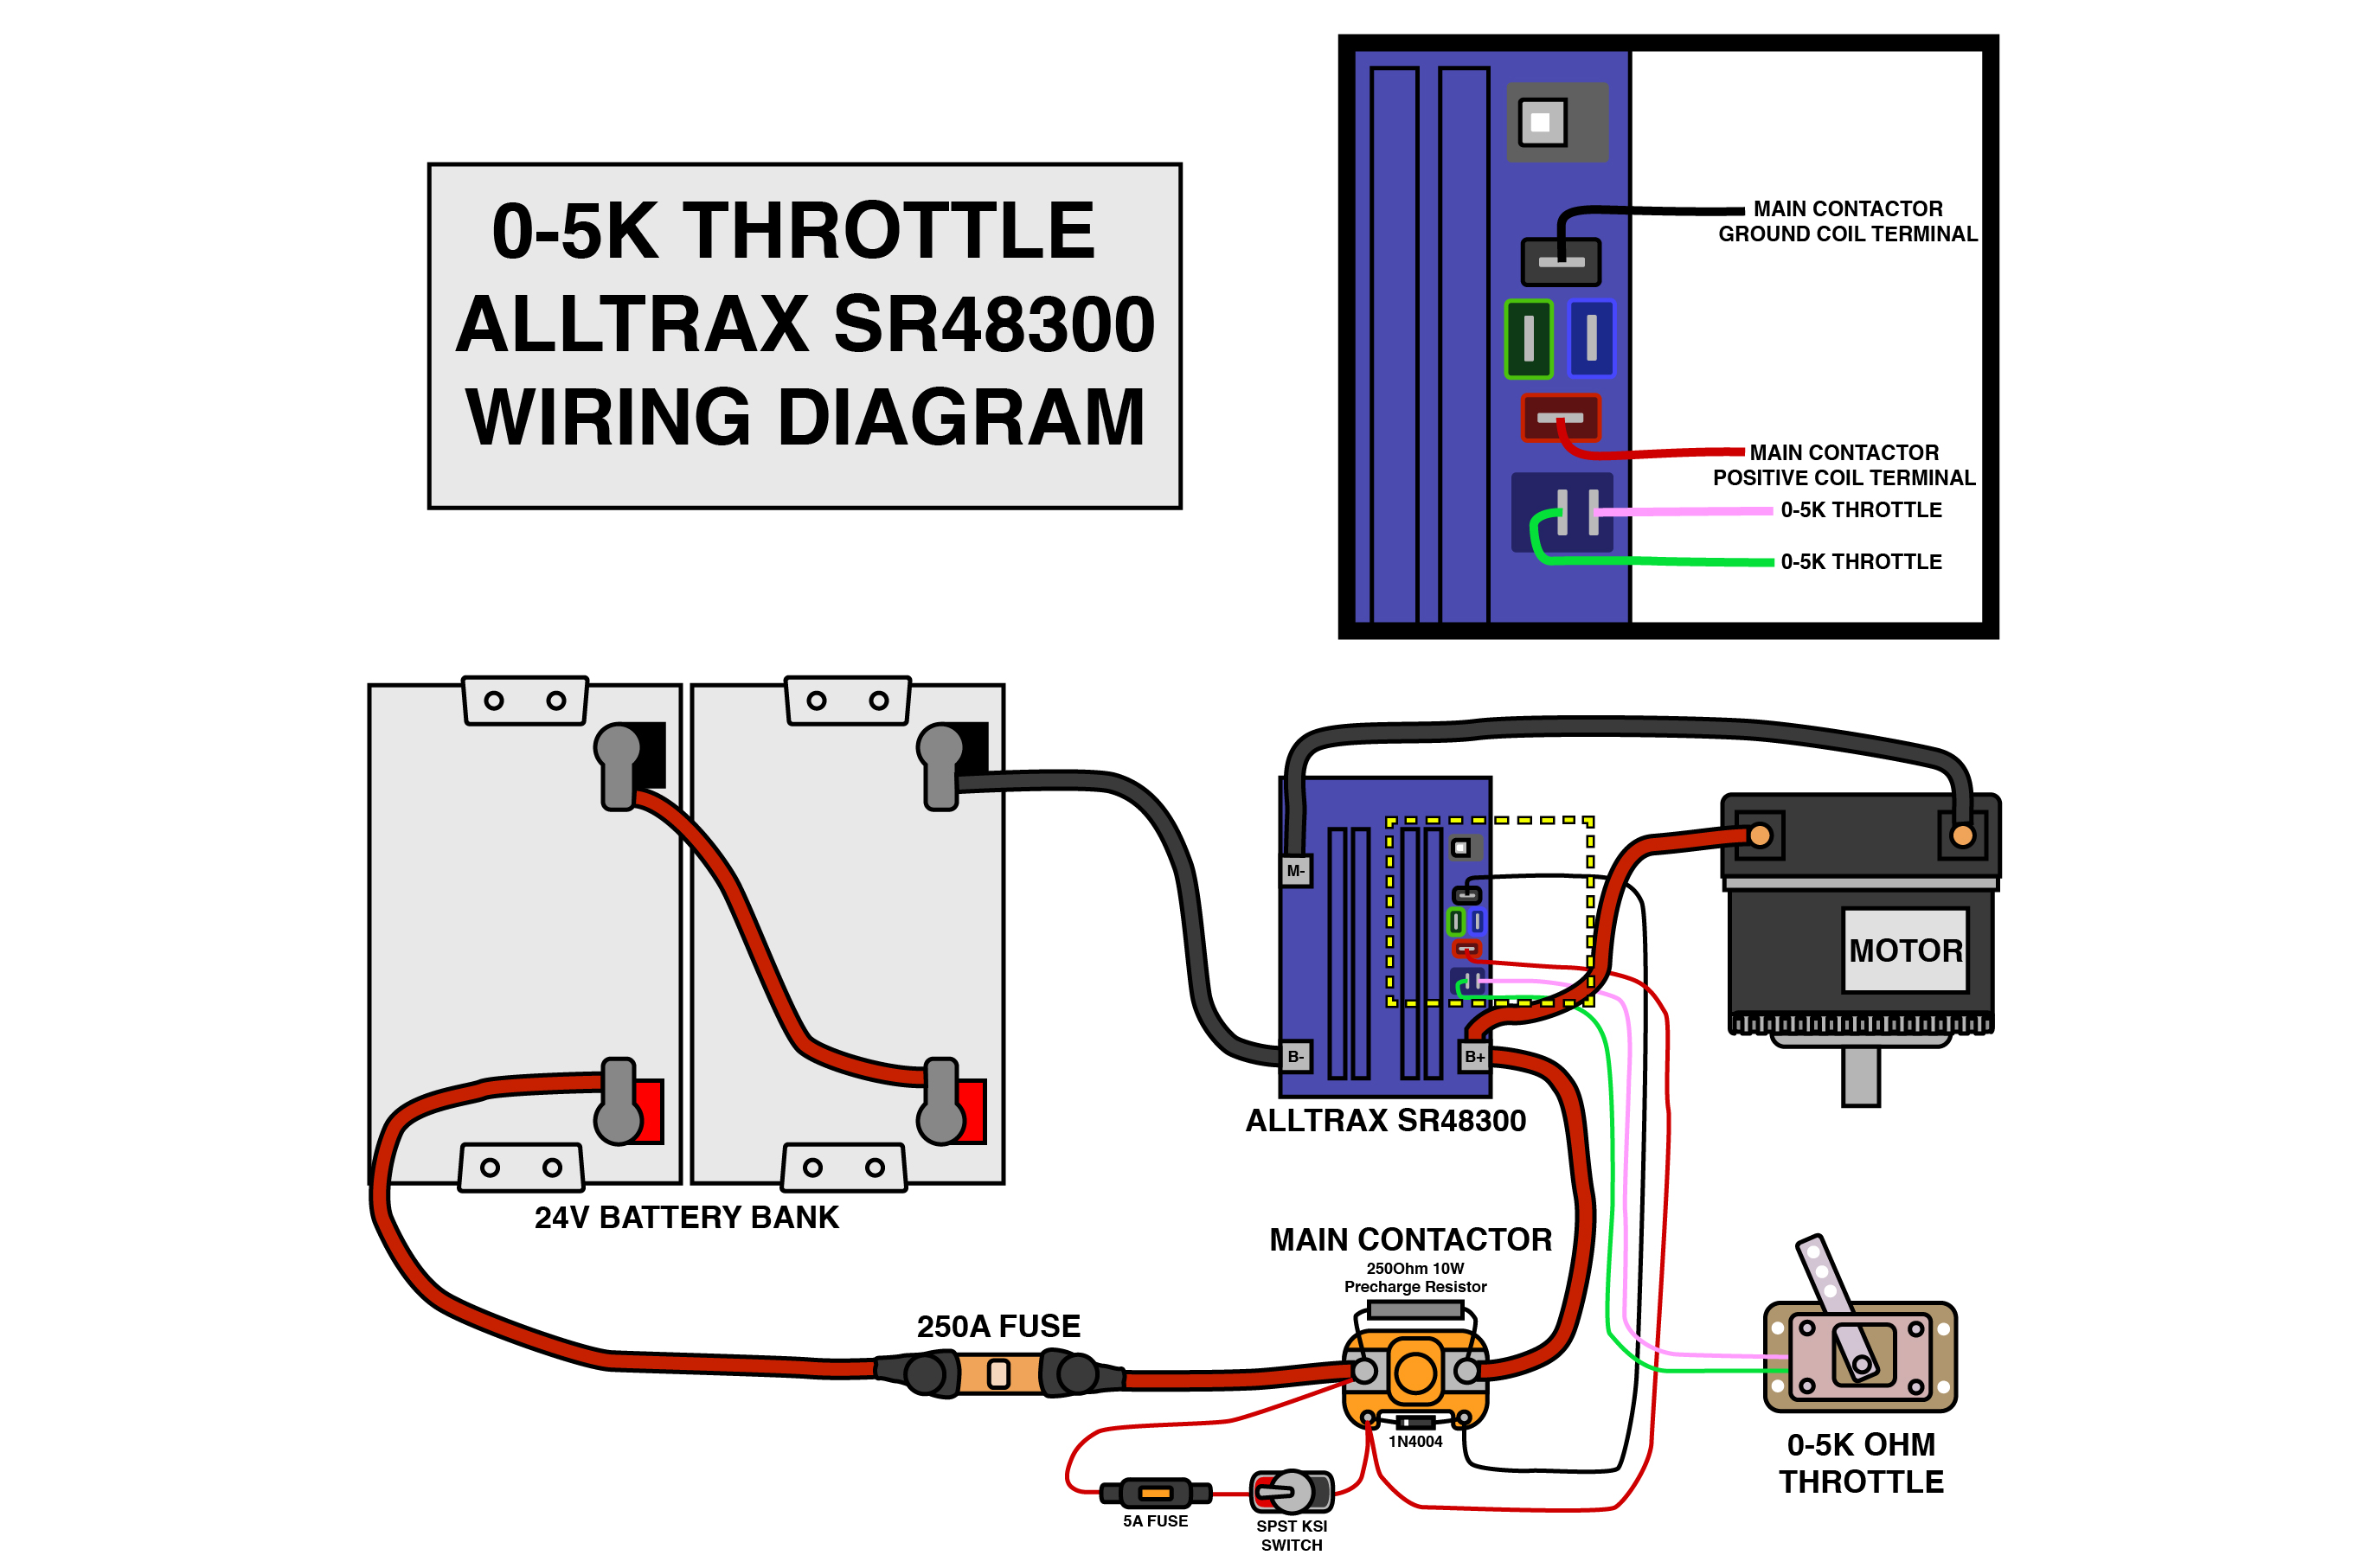 alltrax products page